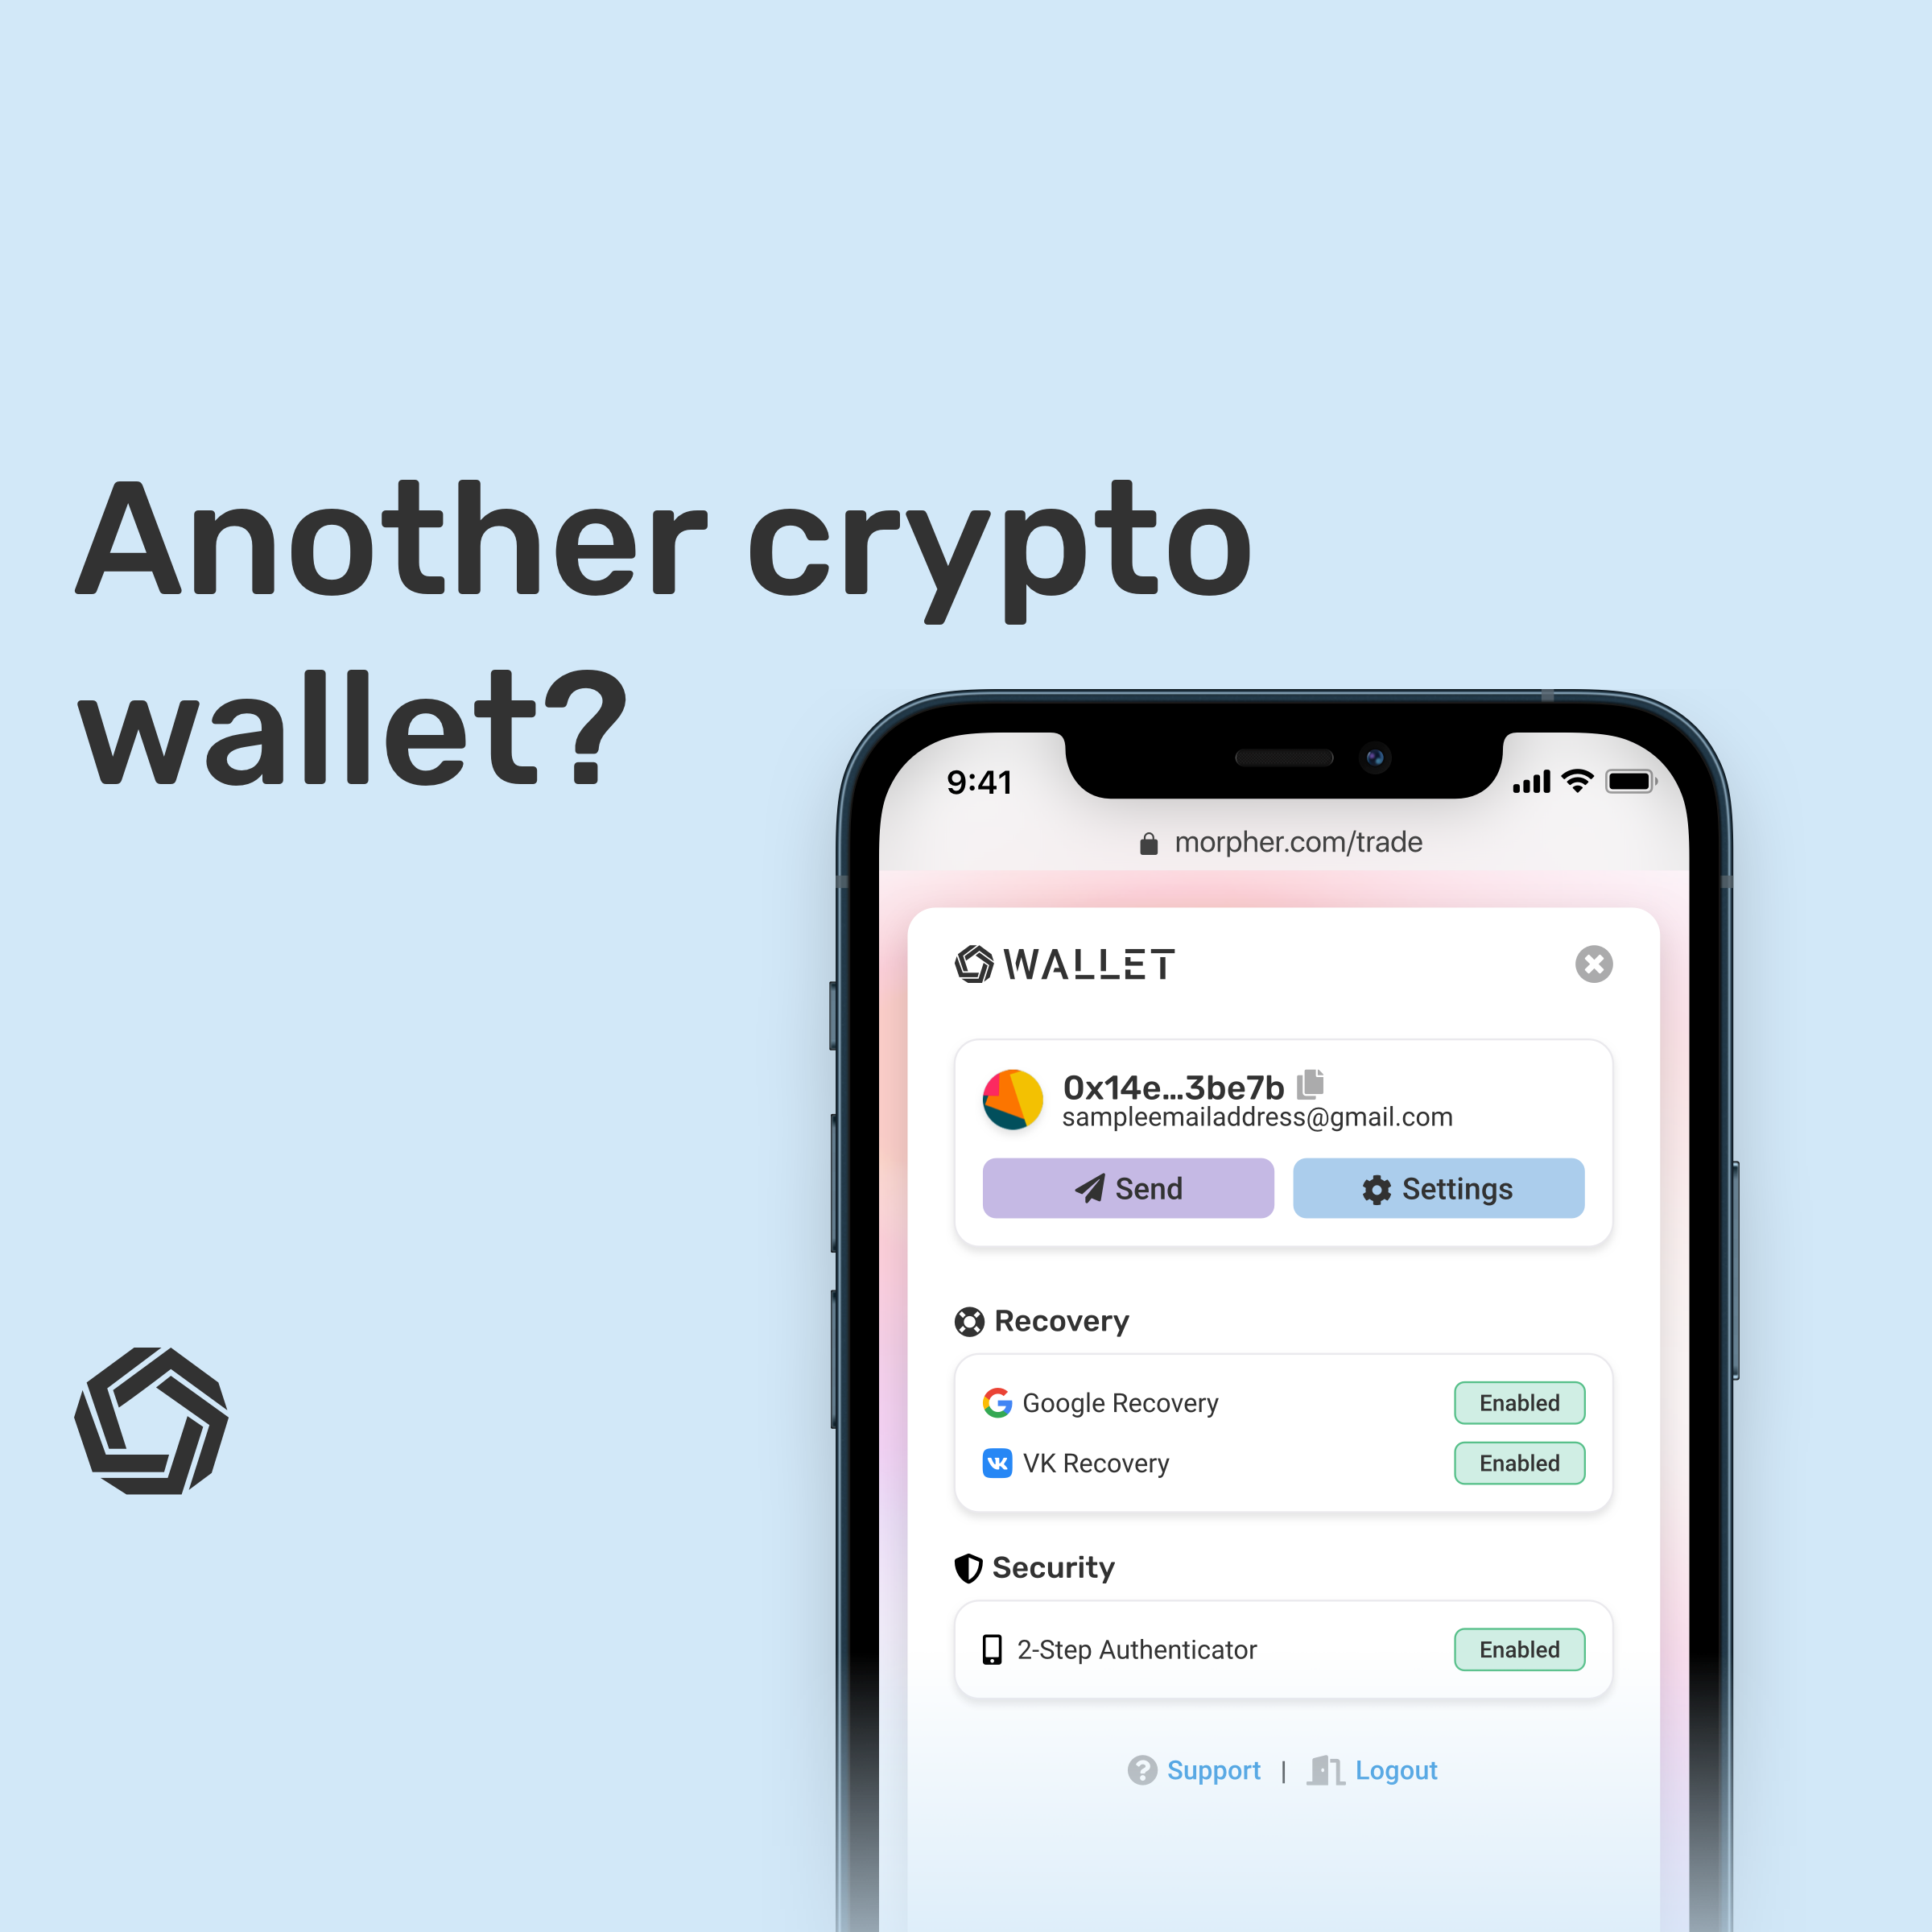 Morpher wallet on iPhone screenshot with recovery and security options. Another crypto wallet?